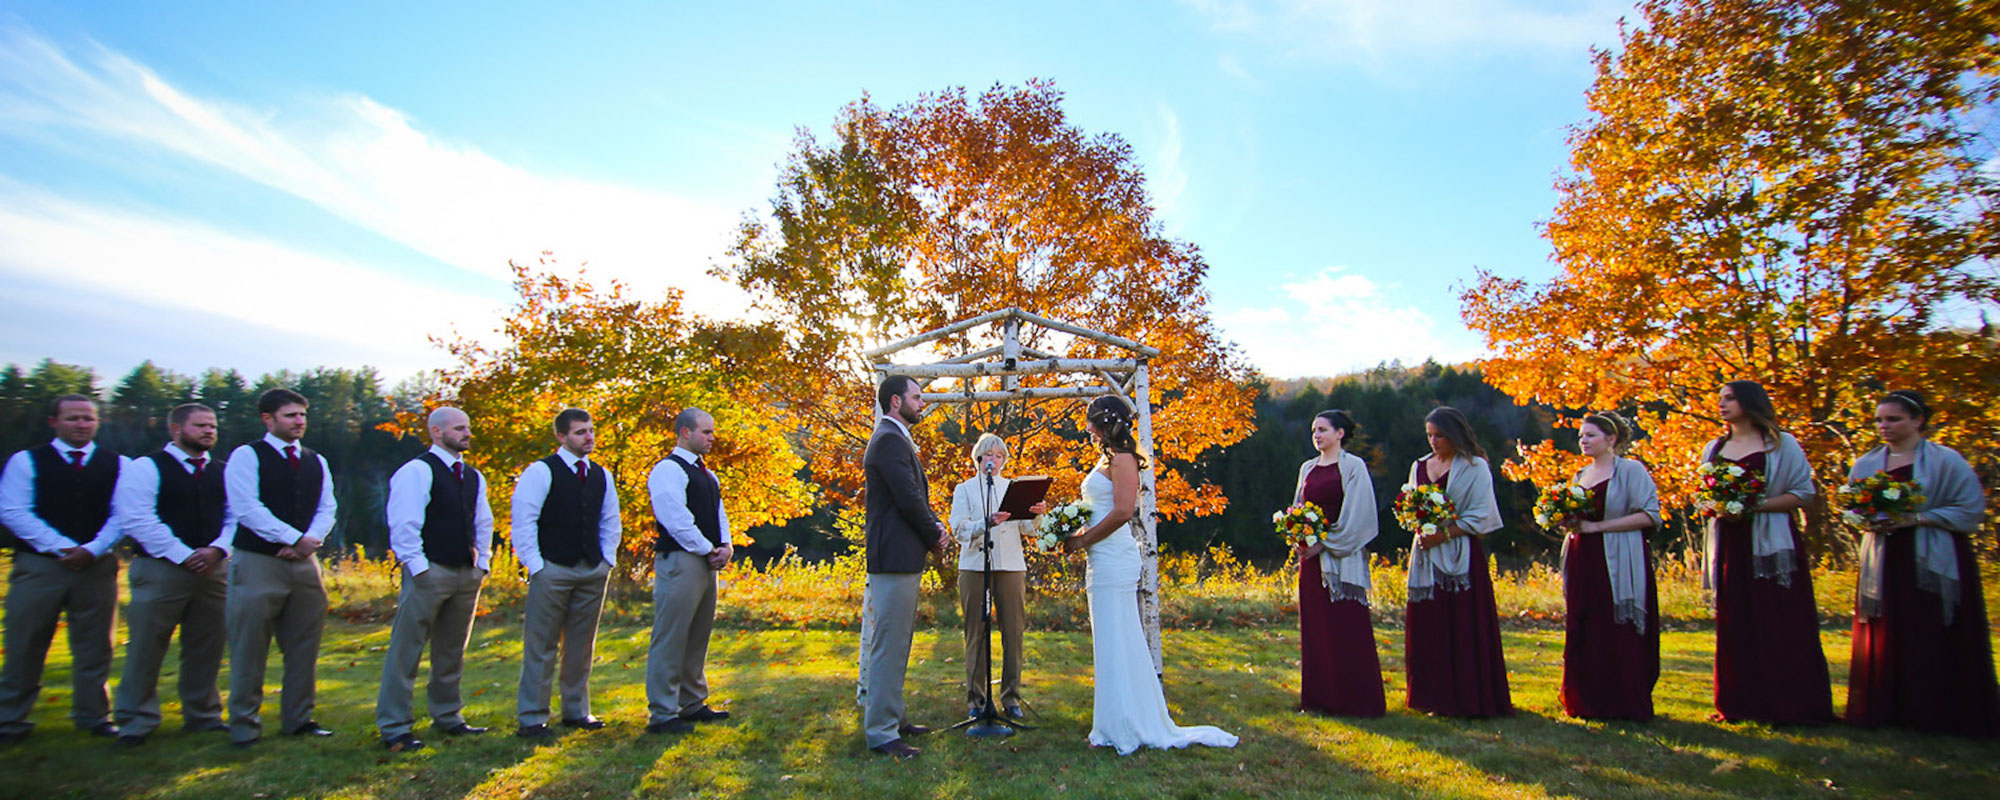 Wedding ceremony at Northern Outdoor Field